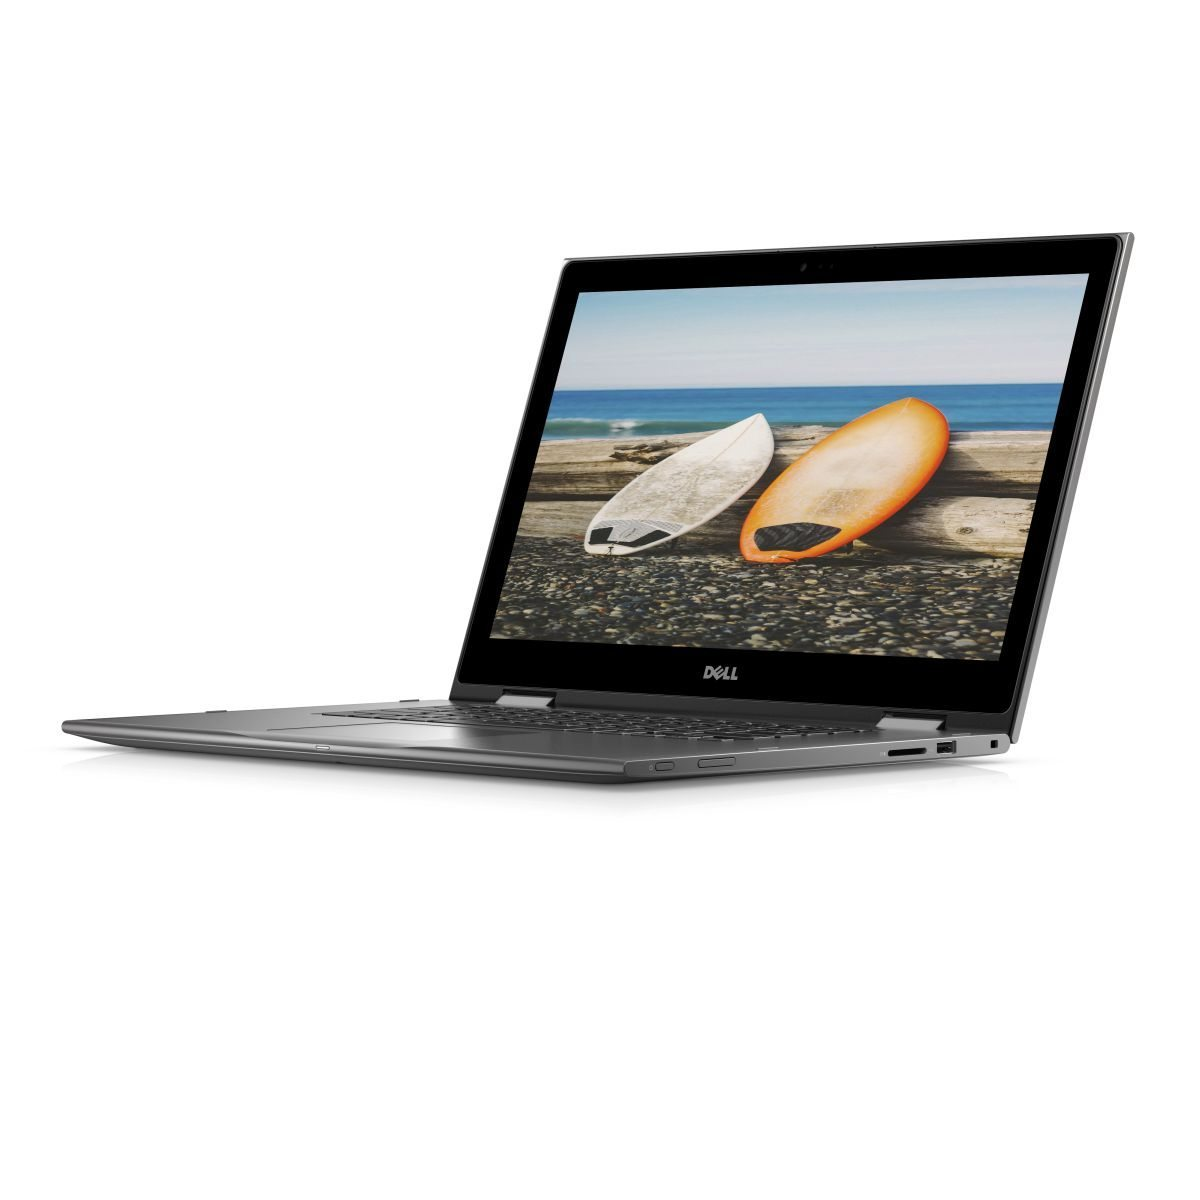 Inspiron 15 5000 Series (Model 5568) 2-in-1 Touch